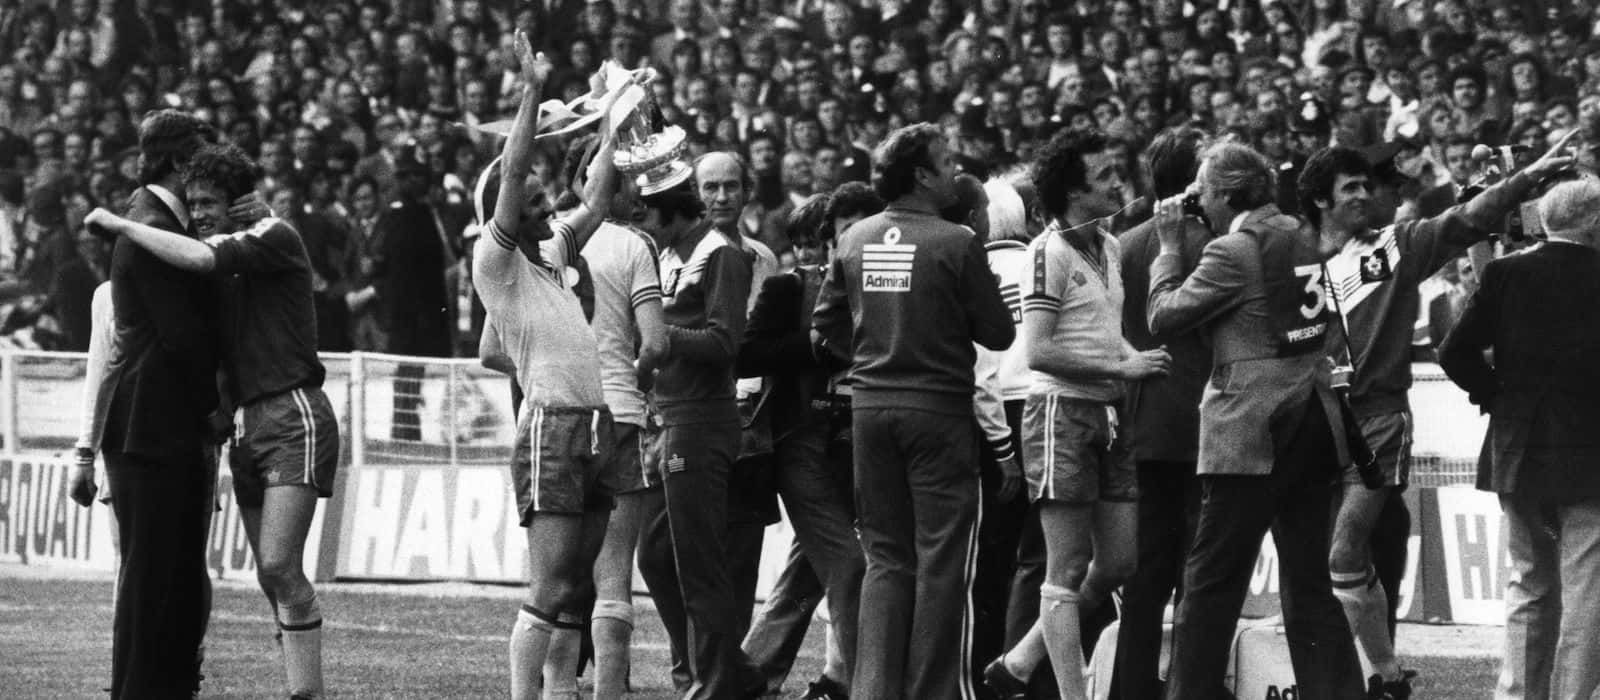 FA Cup Final Series 1975/6: Southampton 1-0 Manchester United